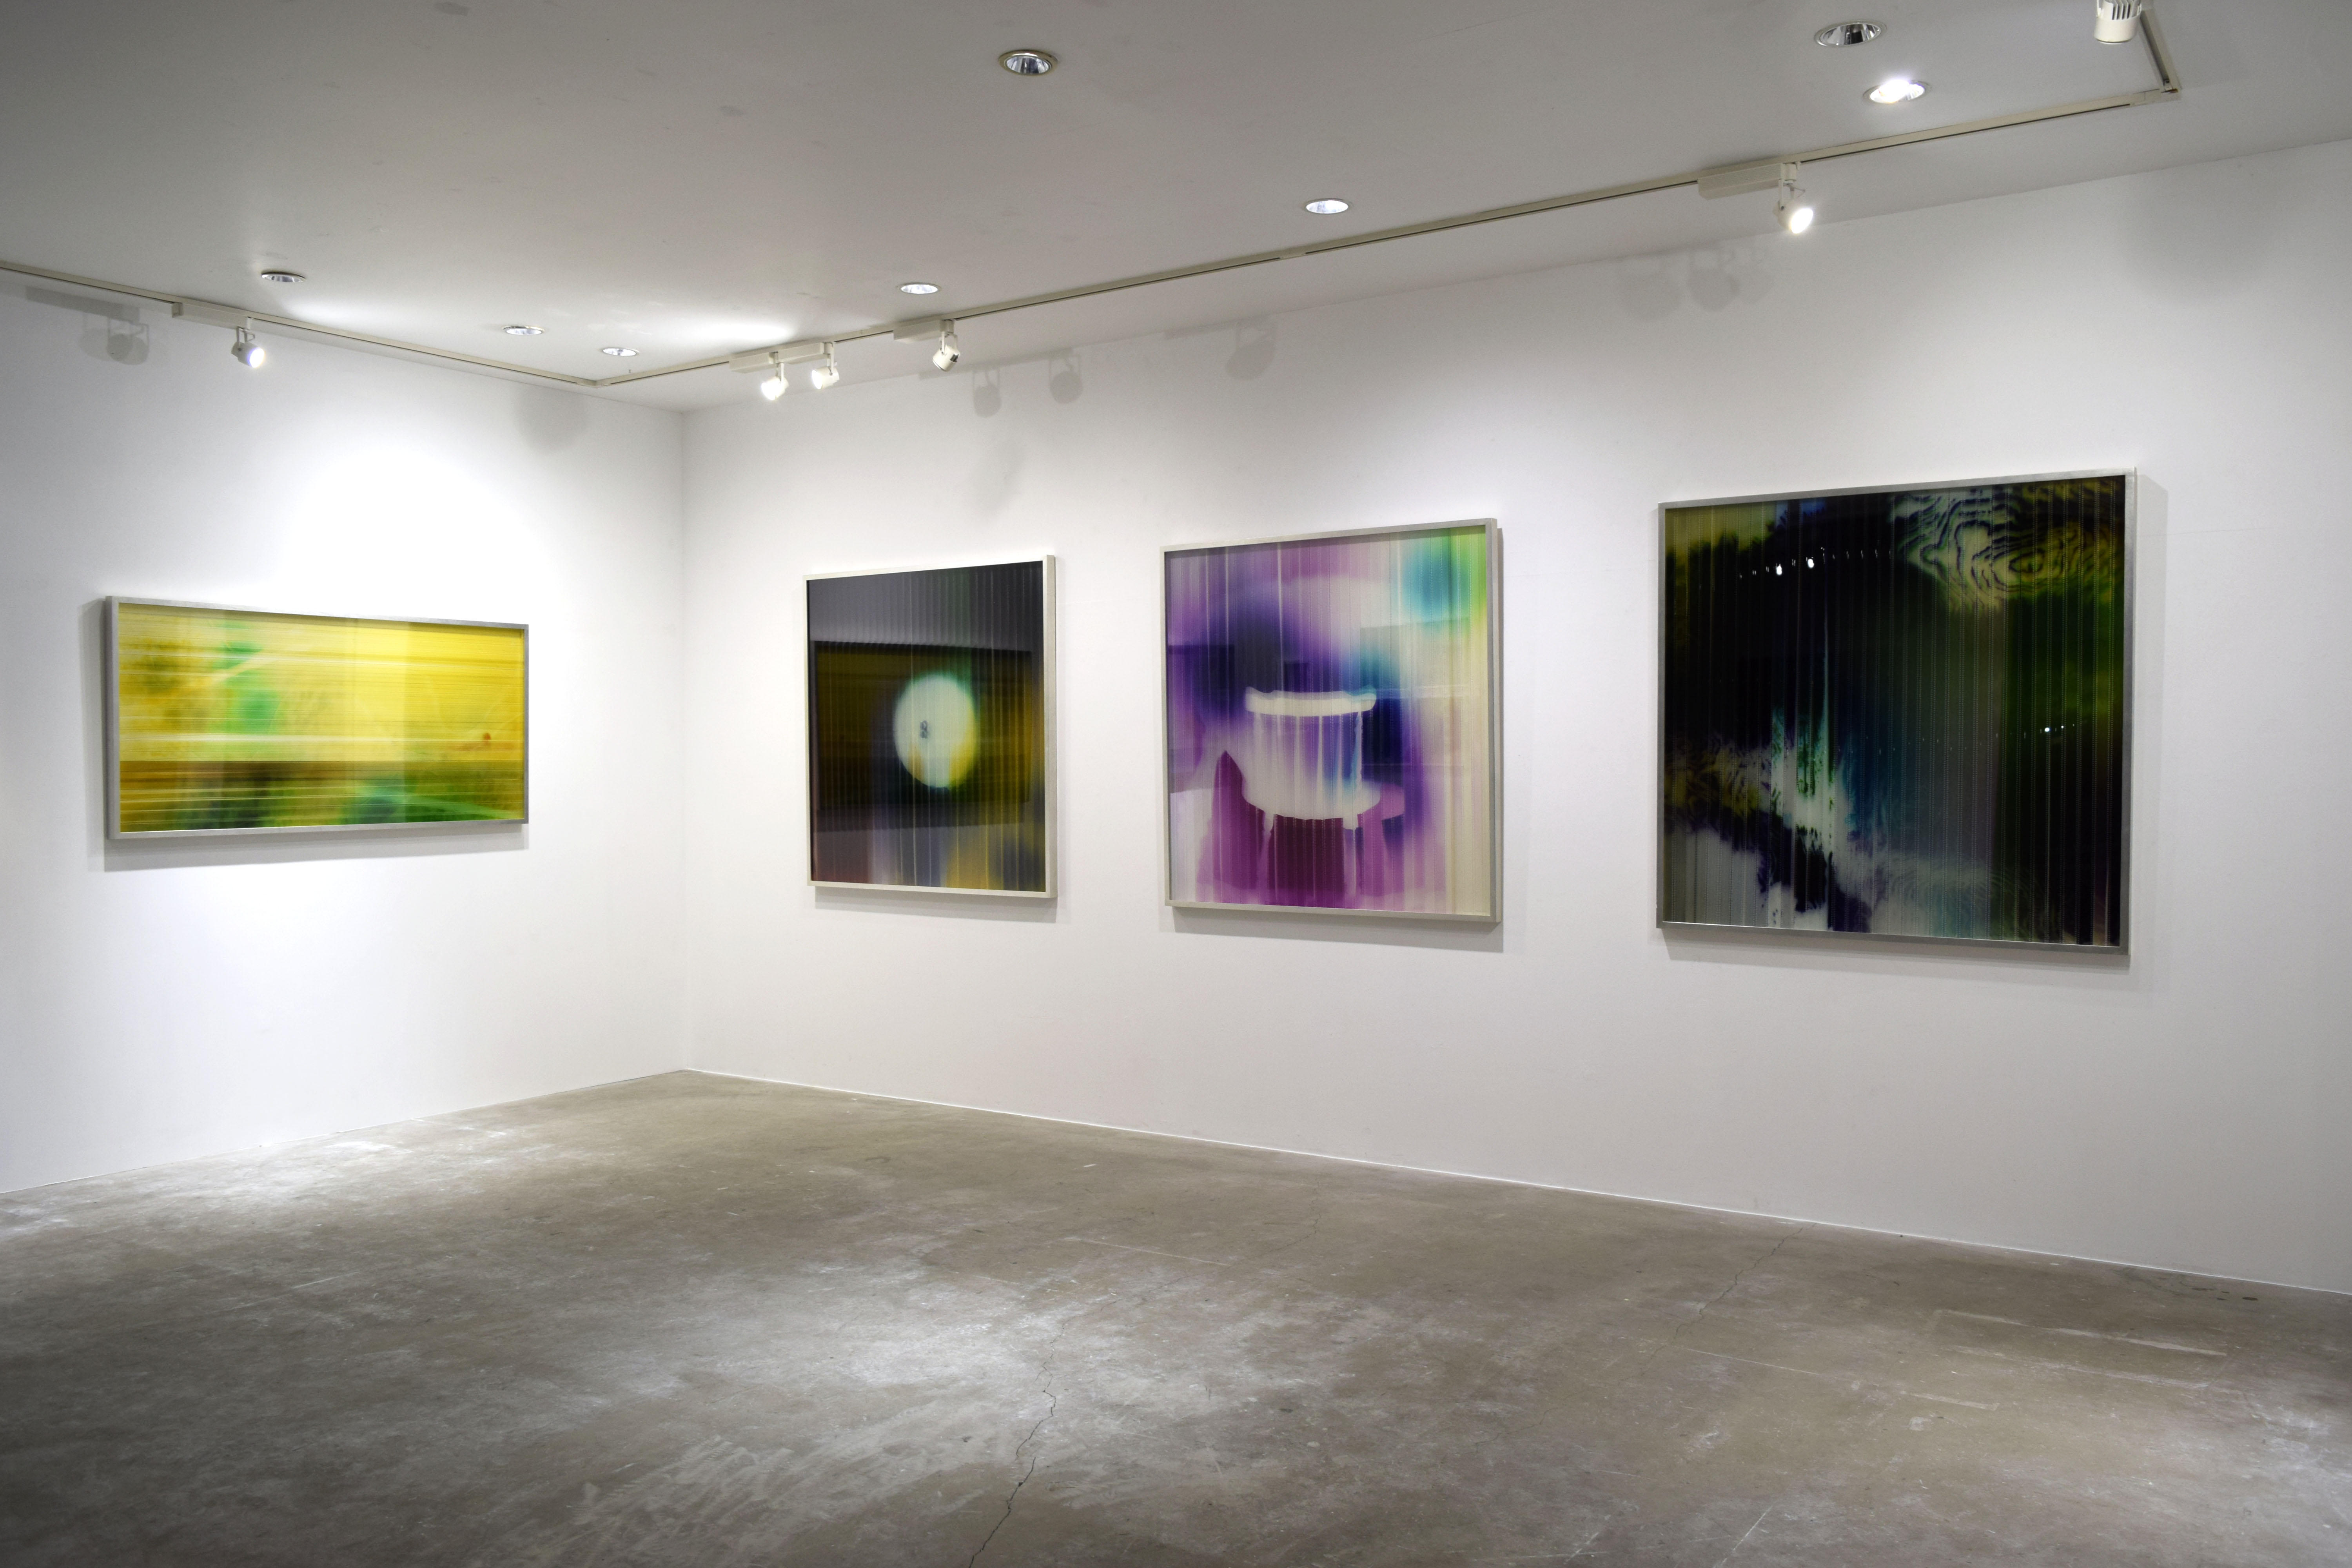 Installation view of Miyuki Takenaka's exhibition 「New Story」